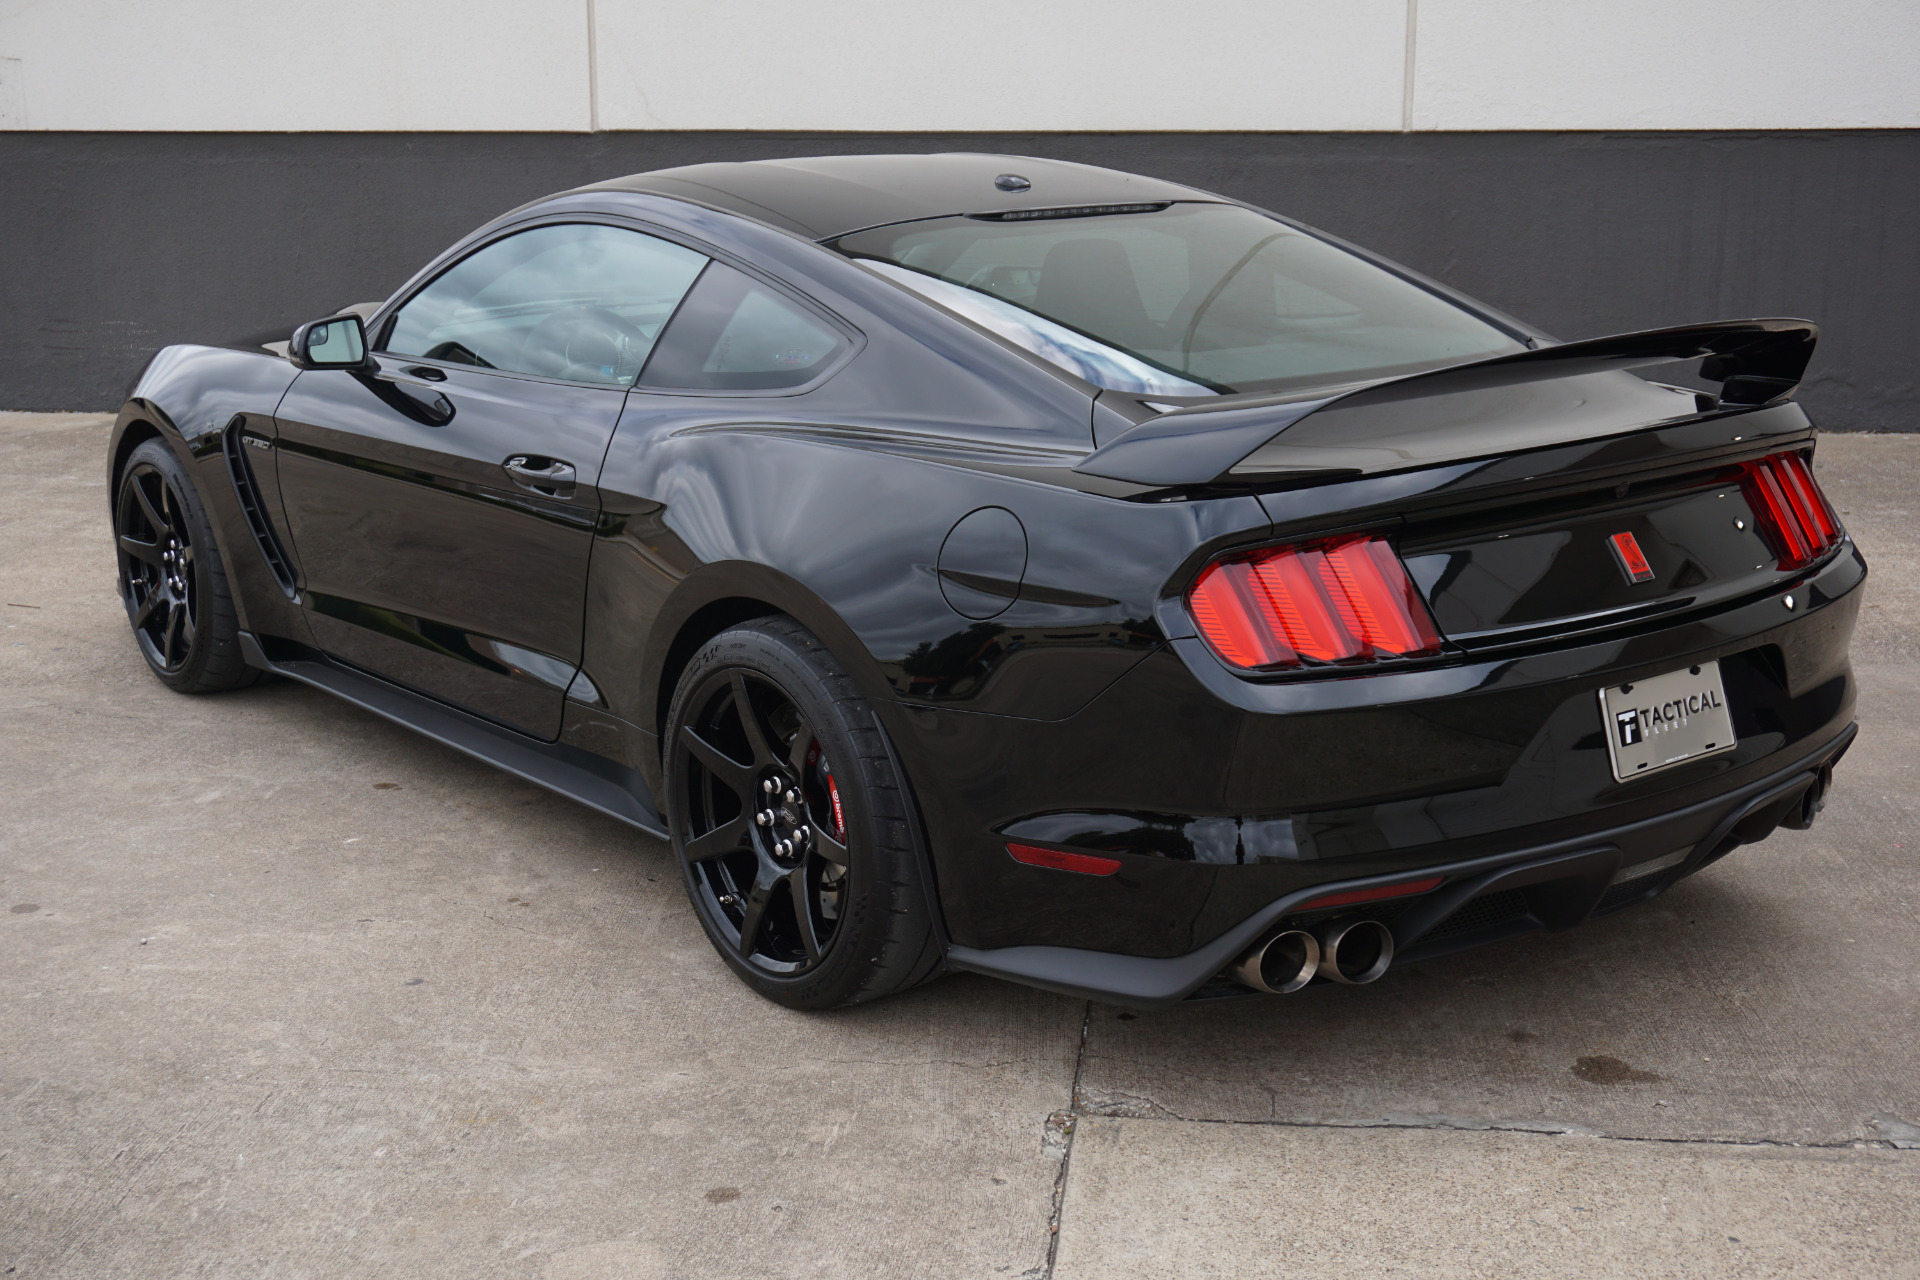 Gt350r For Sale >> Used 2018 Ford Mustang Shelby Gt350r For Sale 67 900 Tactical